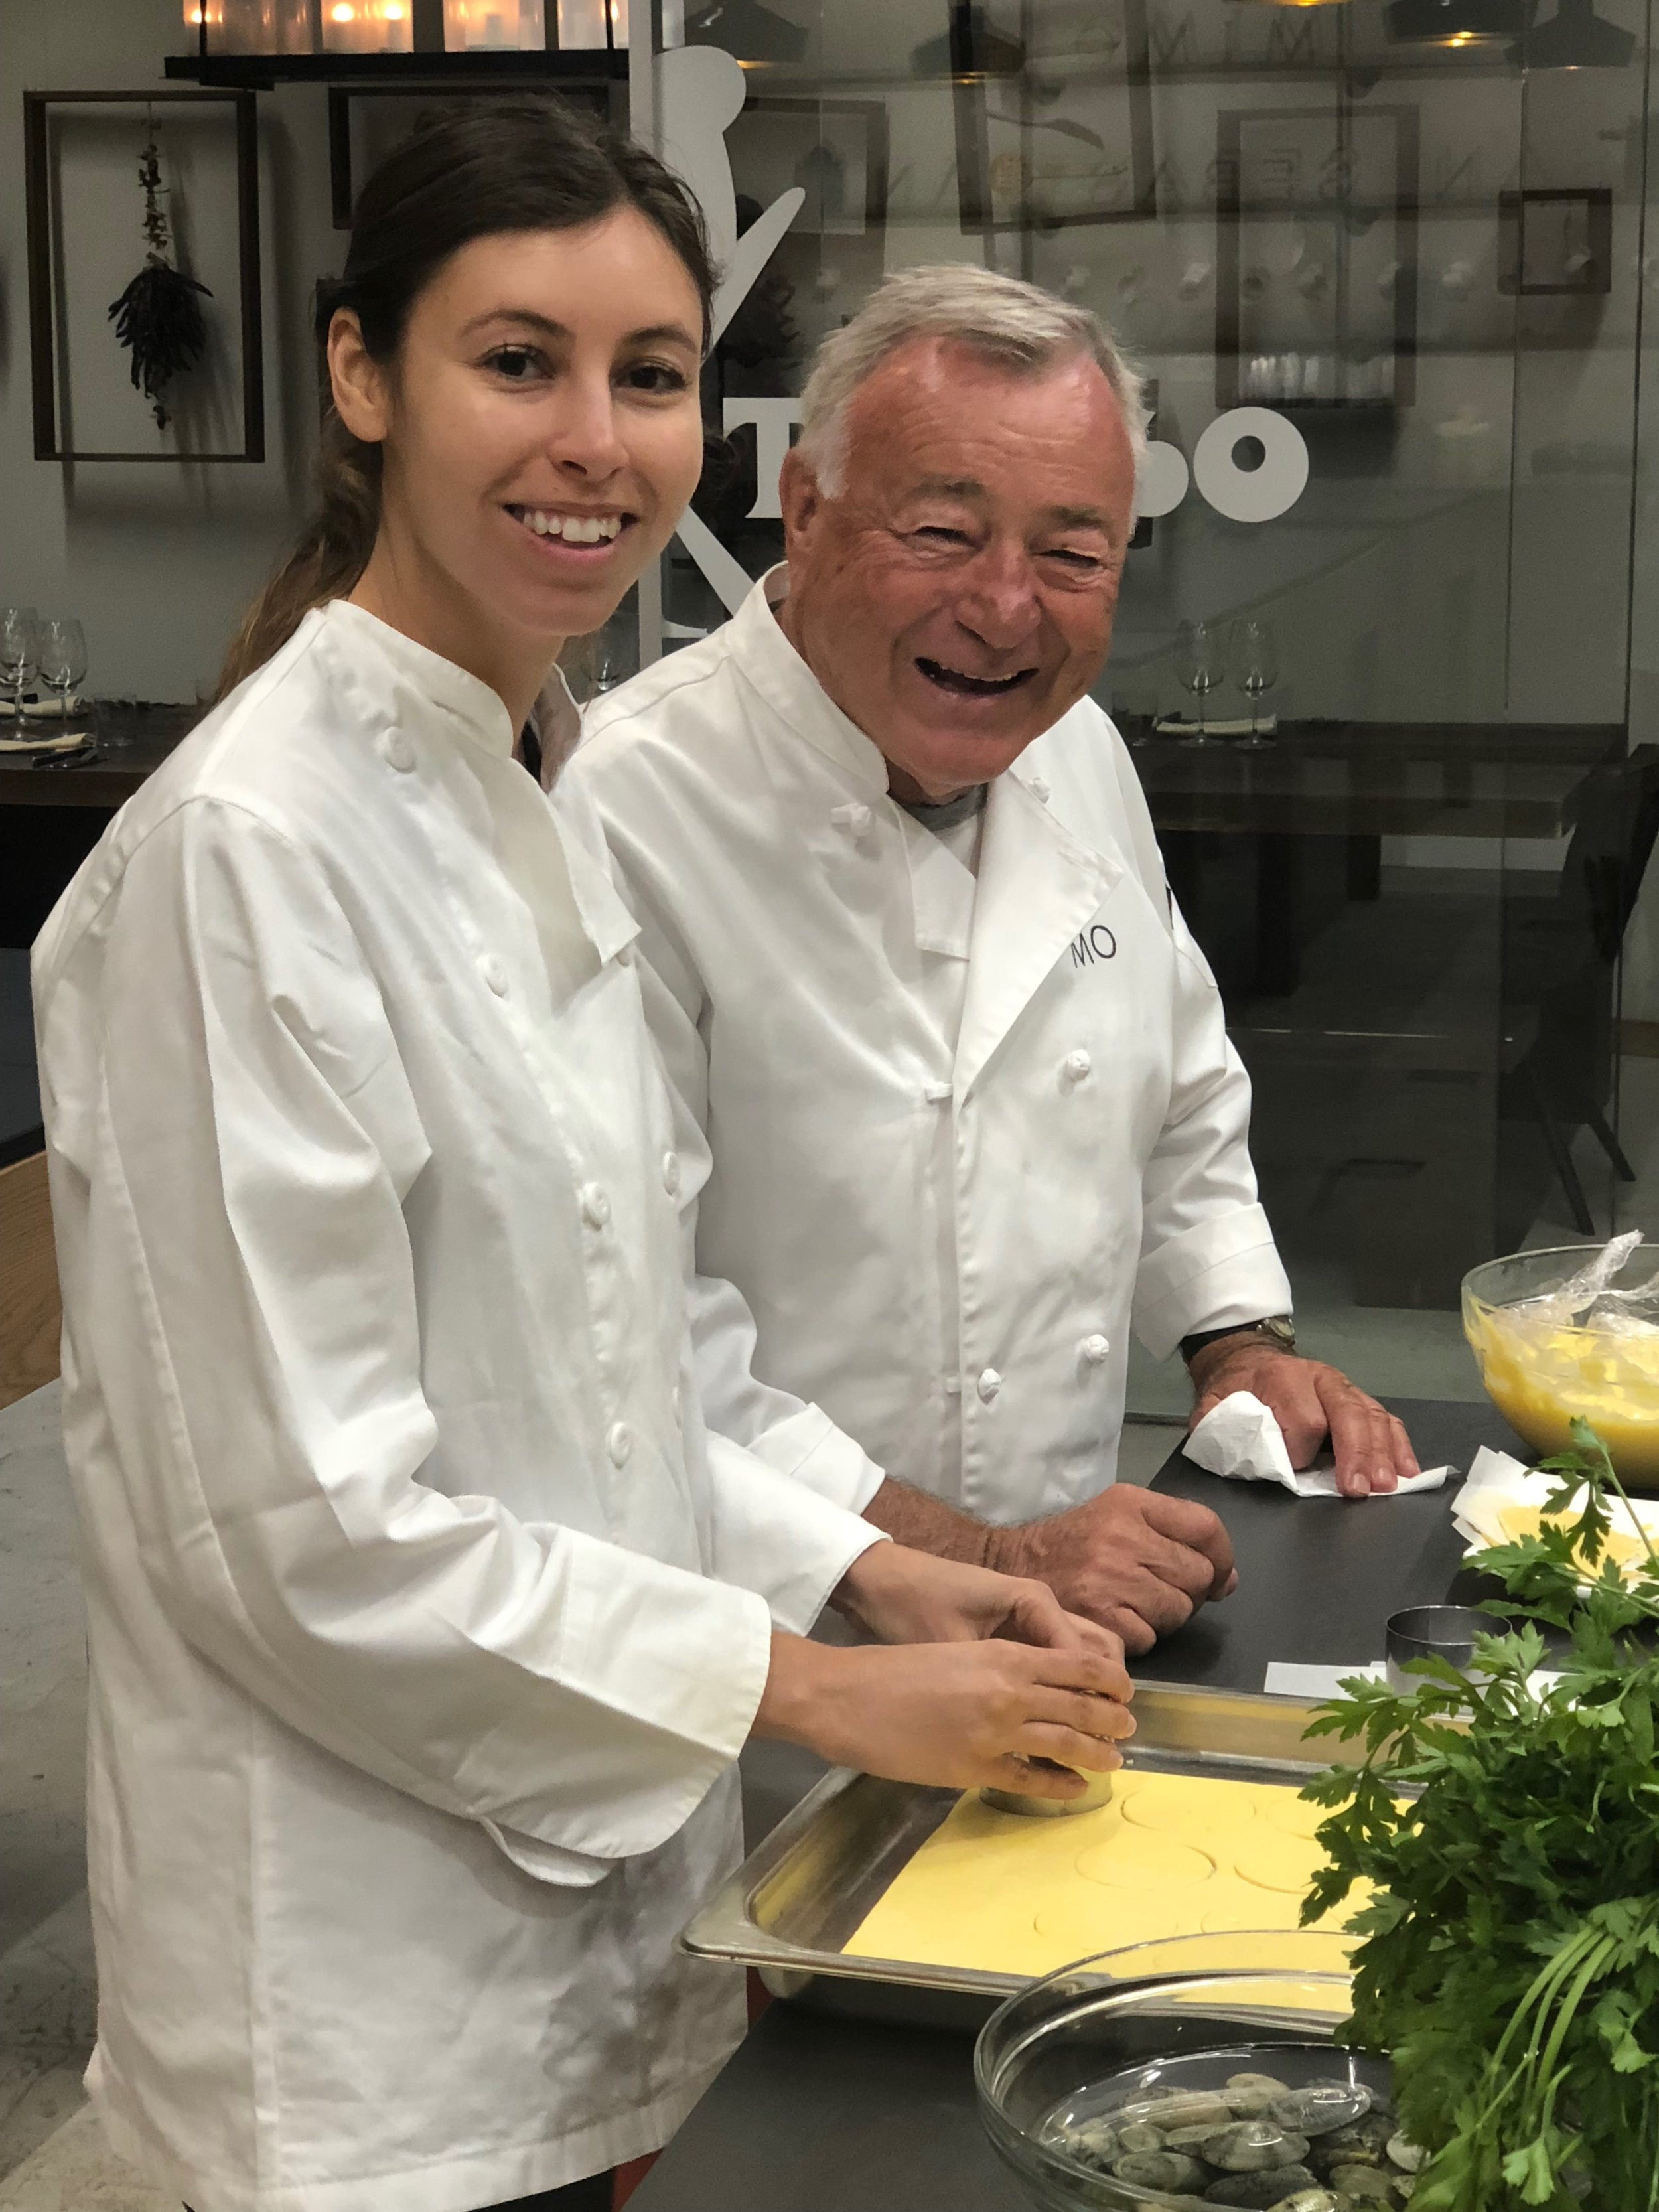 Tiffany and Bill Stankovic cooking away at Mimo.